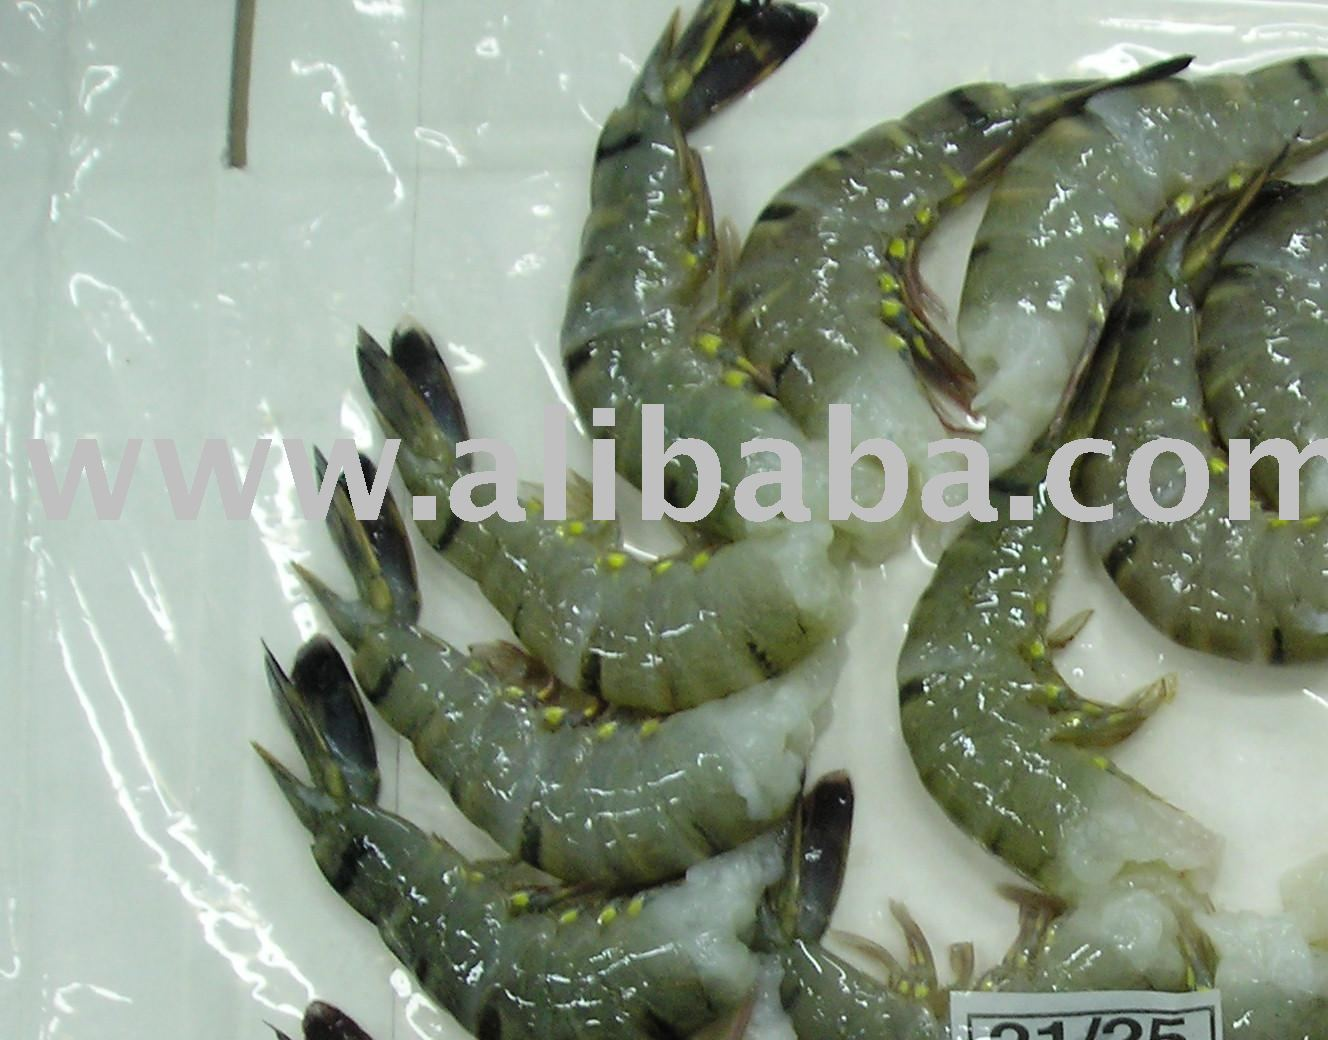 ====frozen Black Tiger Prawns===/===== Shrimp (wild And Farmed) ====== -  Buy Frozen Black Tiger Prawns / Shrimp (wild And Farmed Accepted) ==chinese